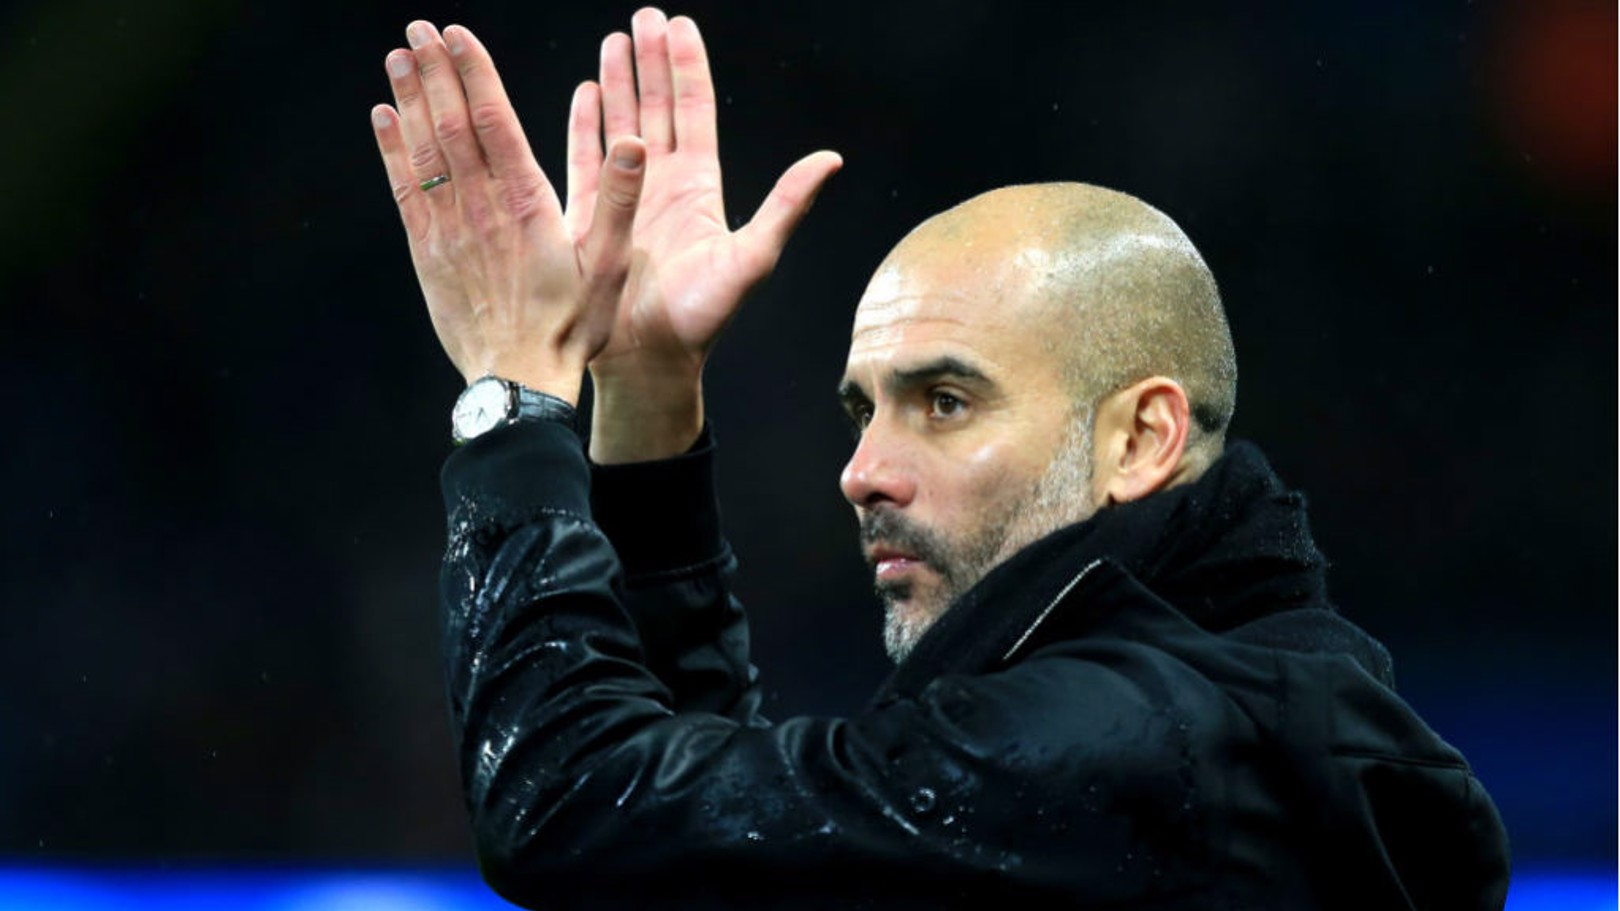 LEADING MAN: Pep Guardiola has been nominated for December's Premier League manager of the month award